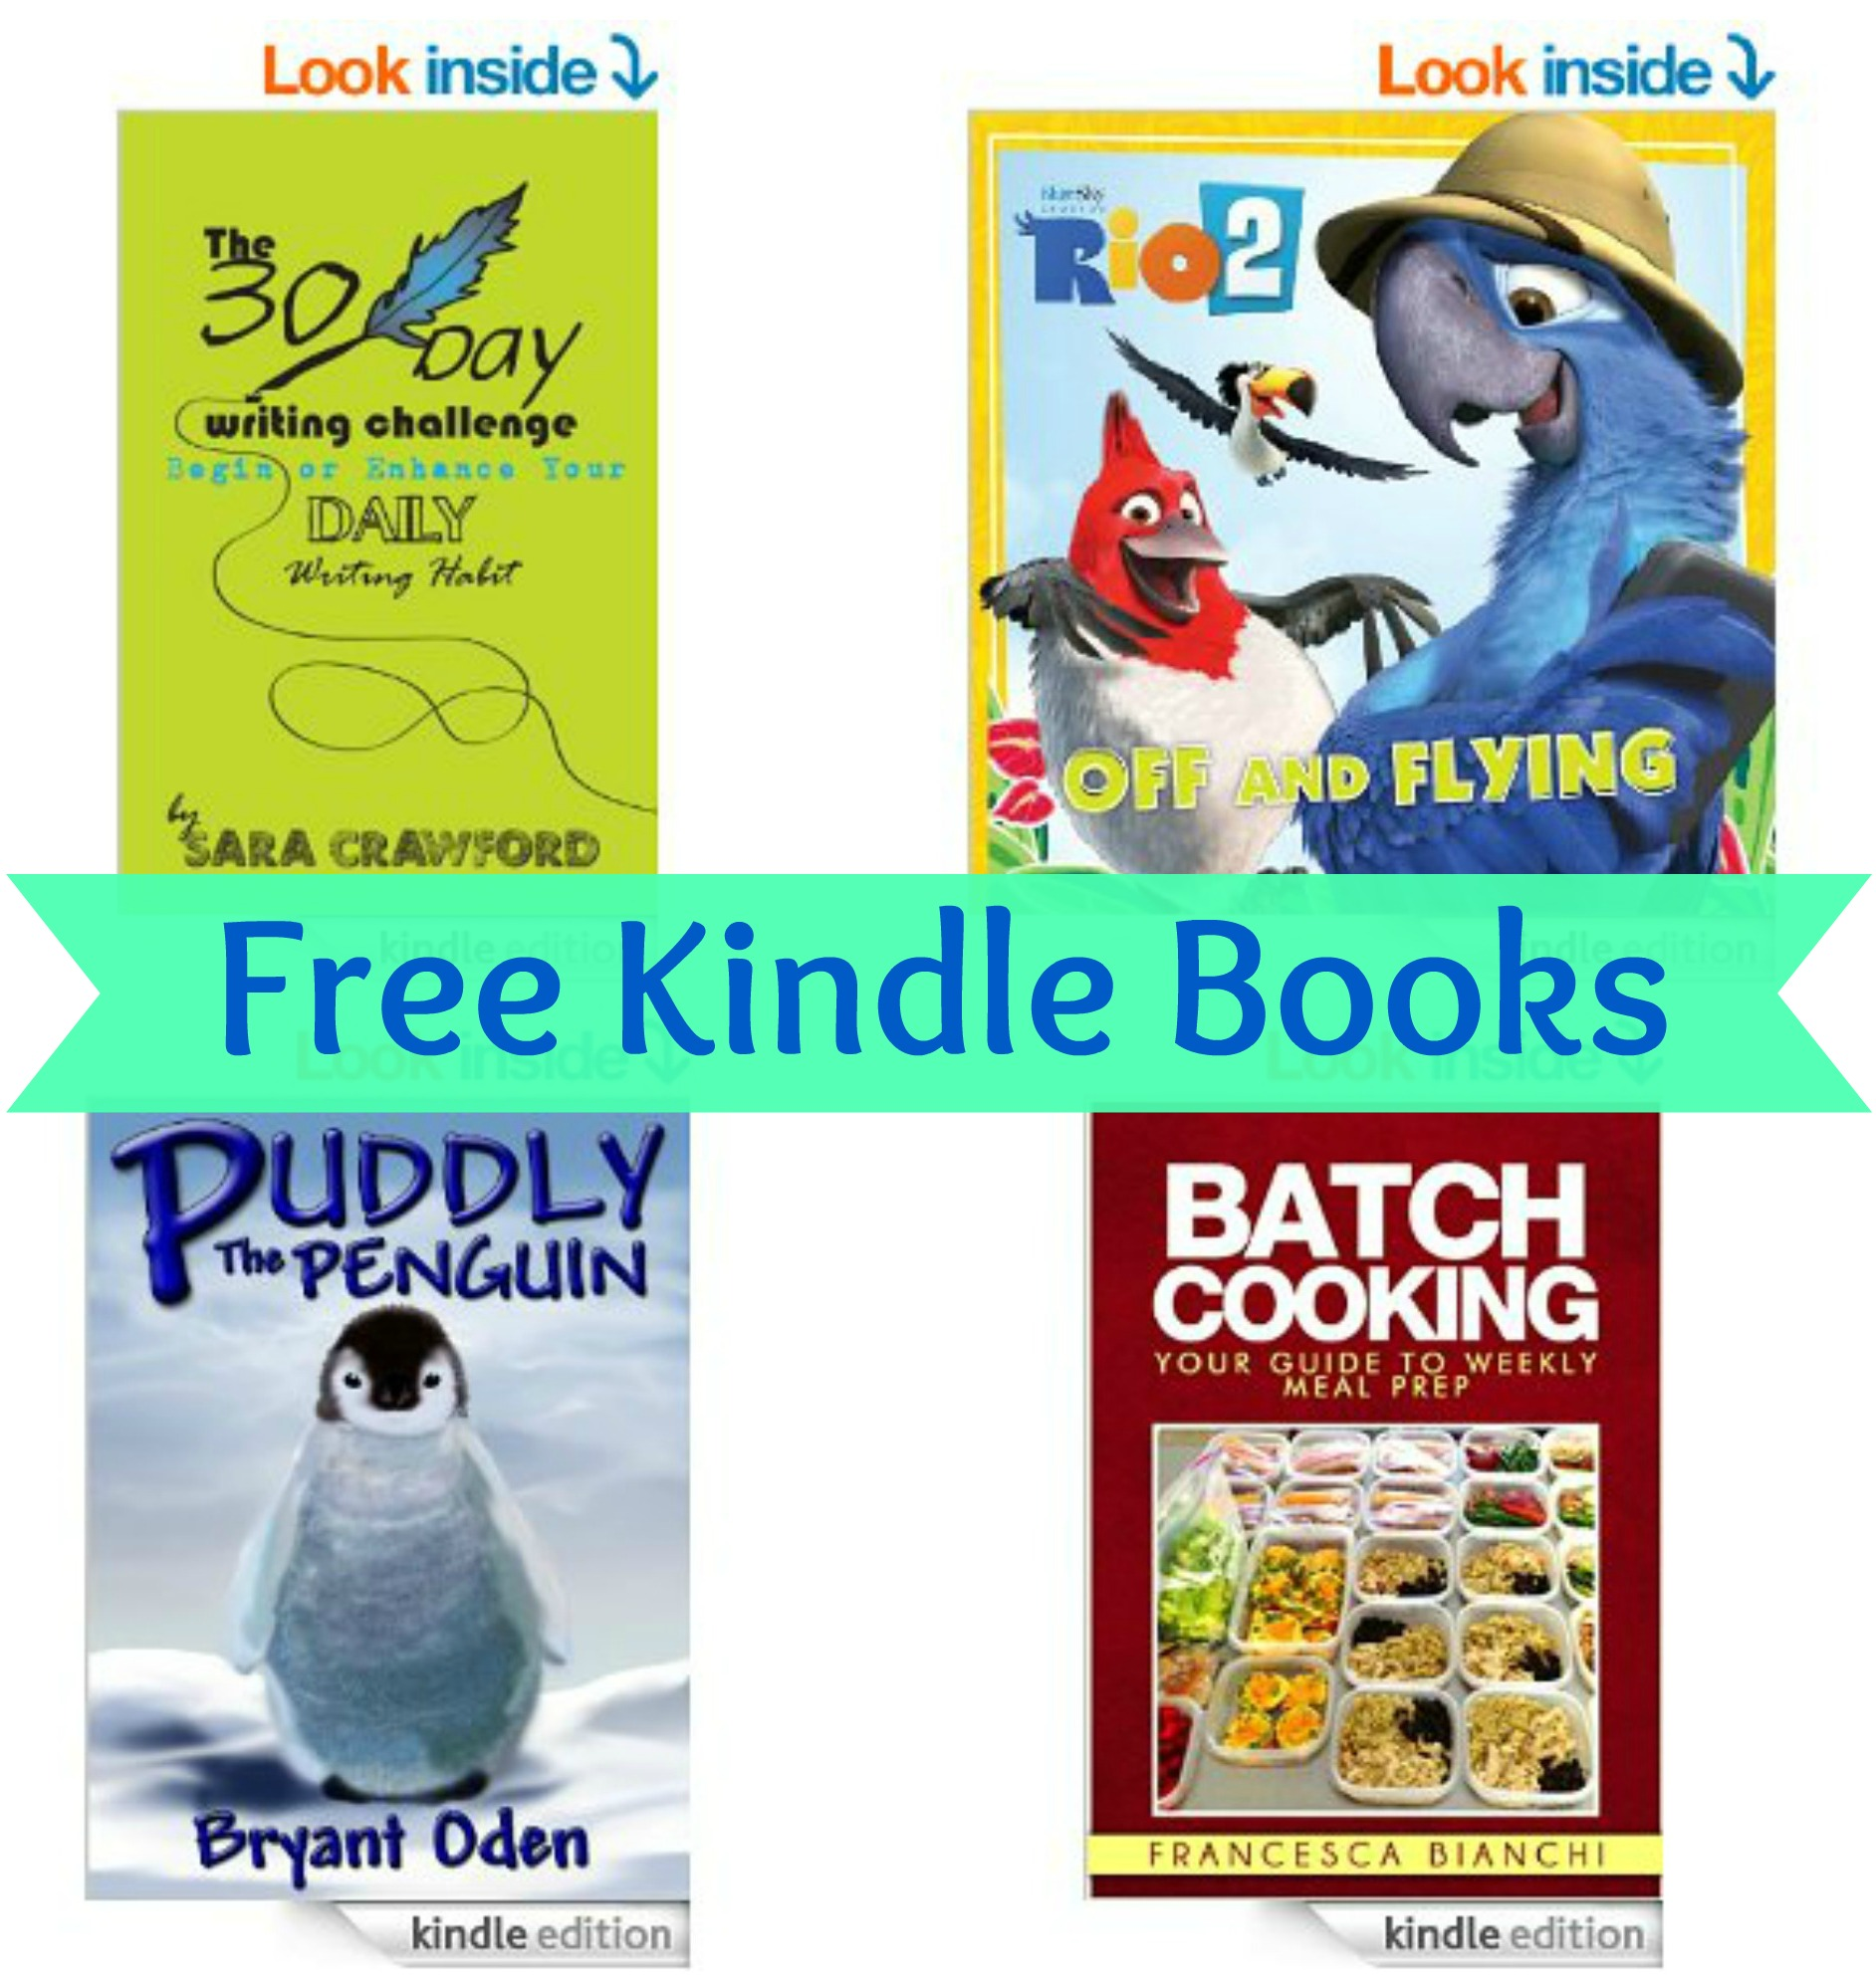 19 FREE Kindle Books: Once Upon an Island, The Art of ...